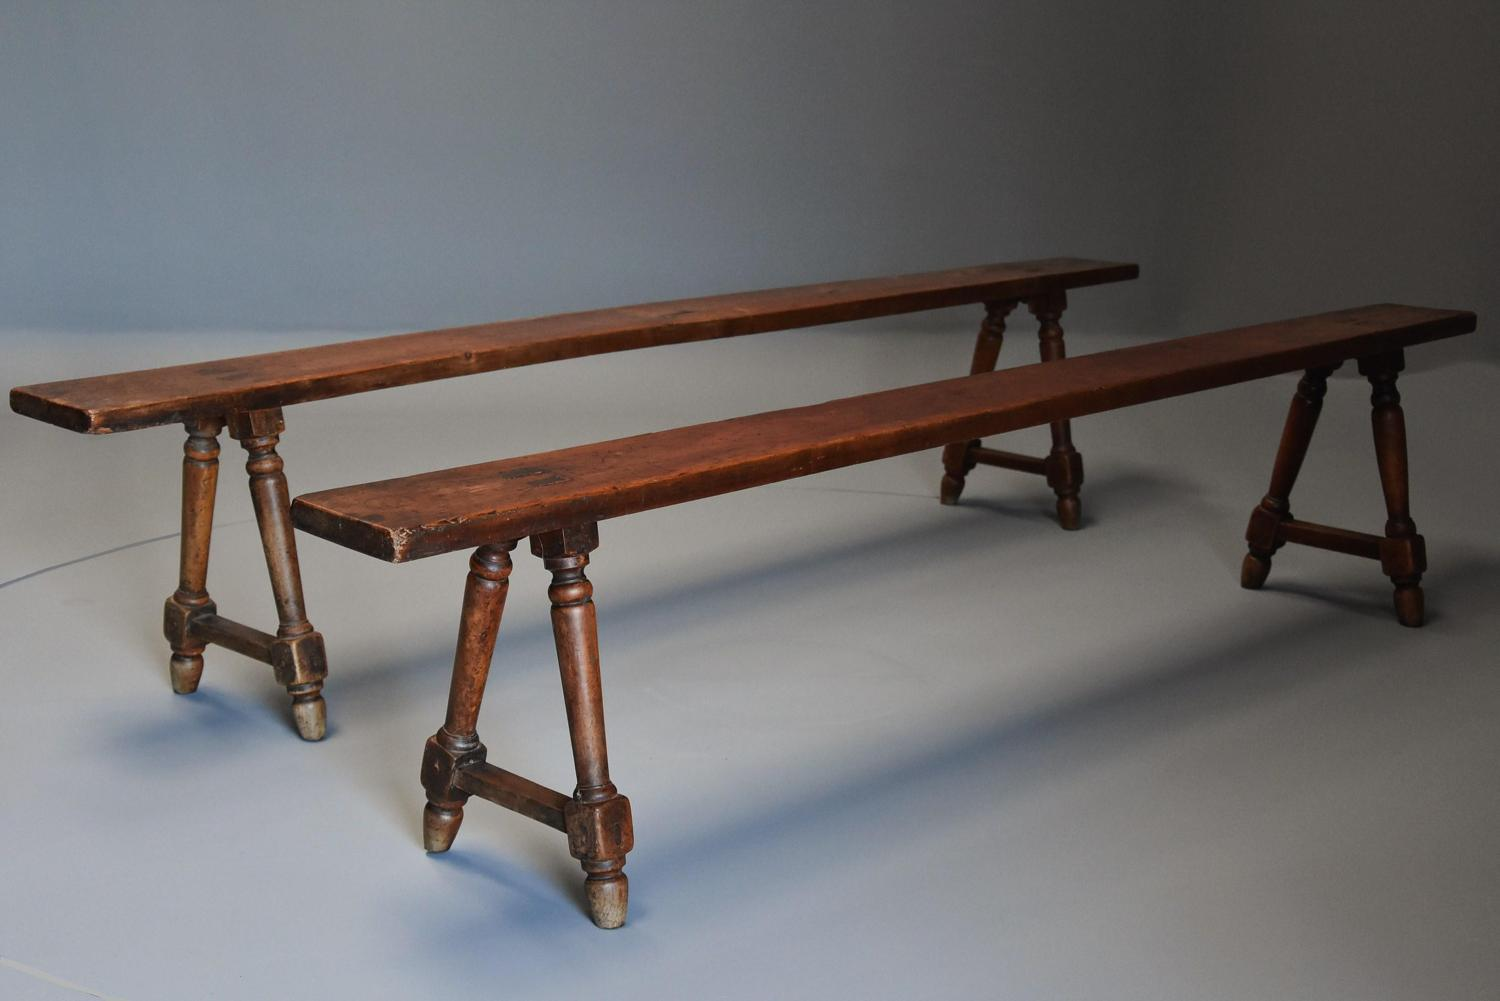 Pair of mid 19th century French fruitwood benches